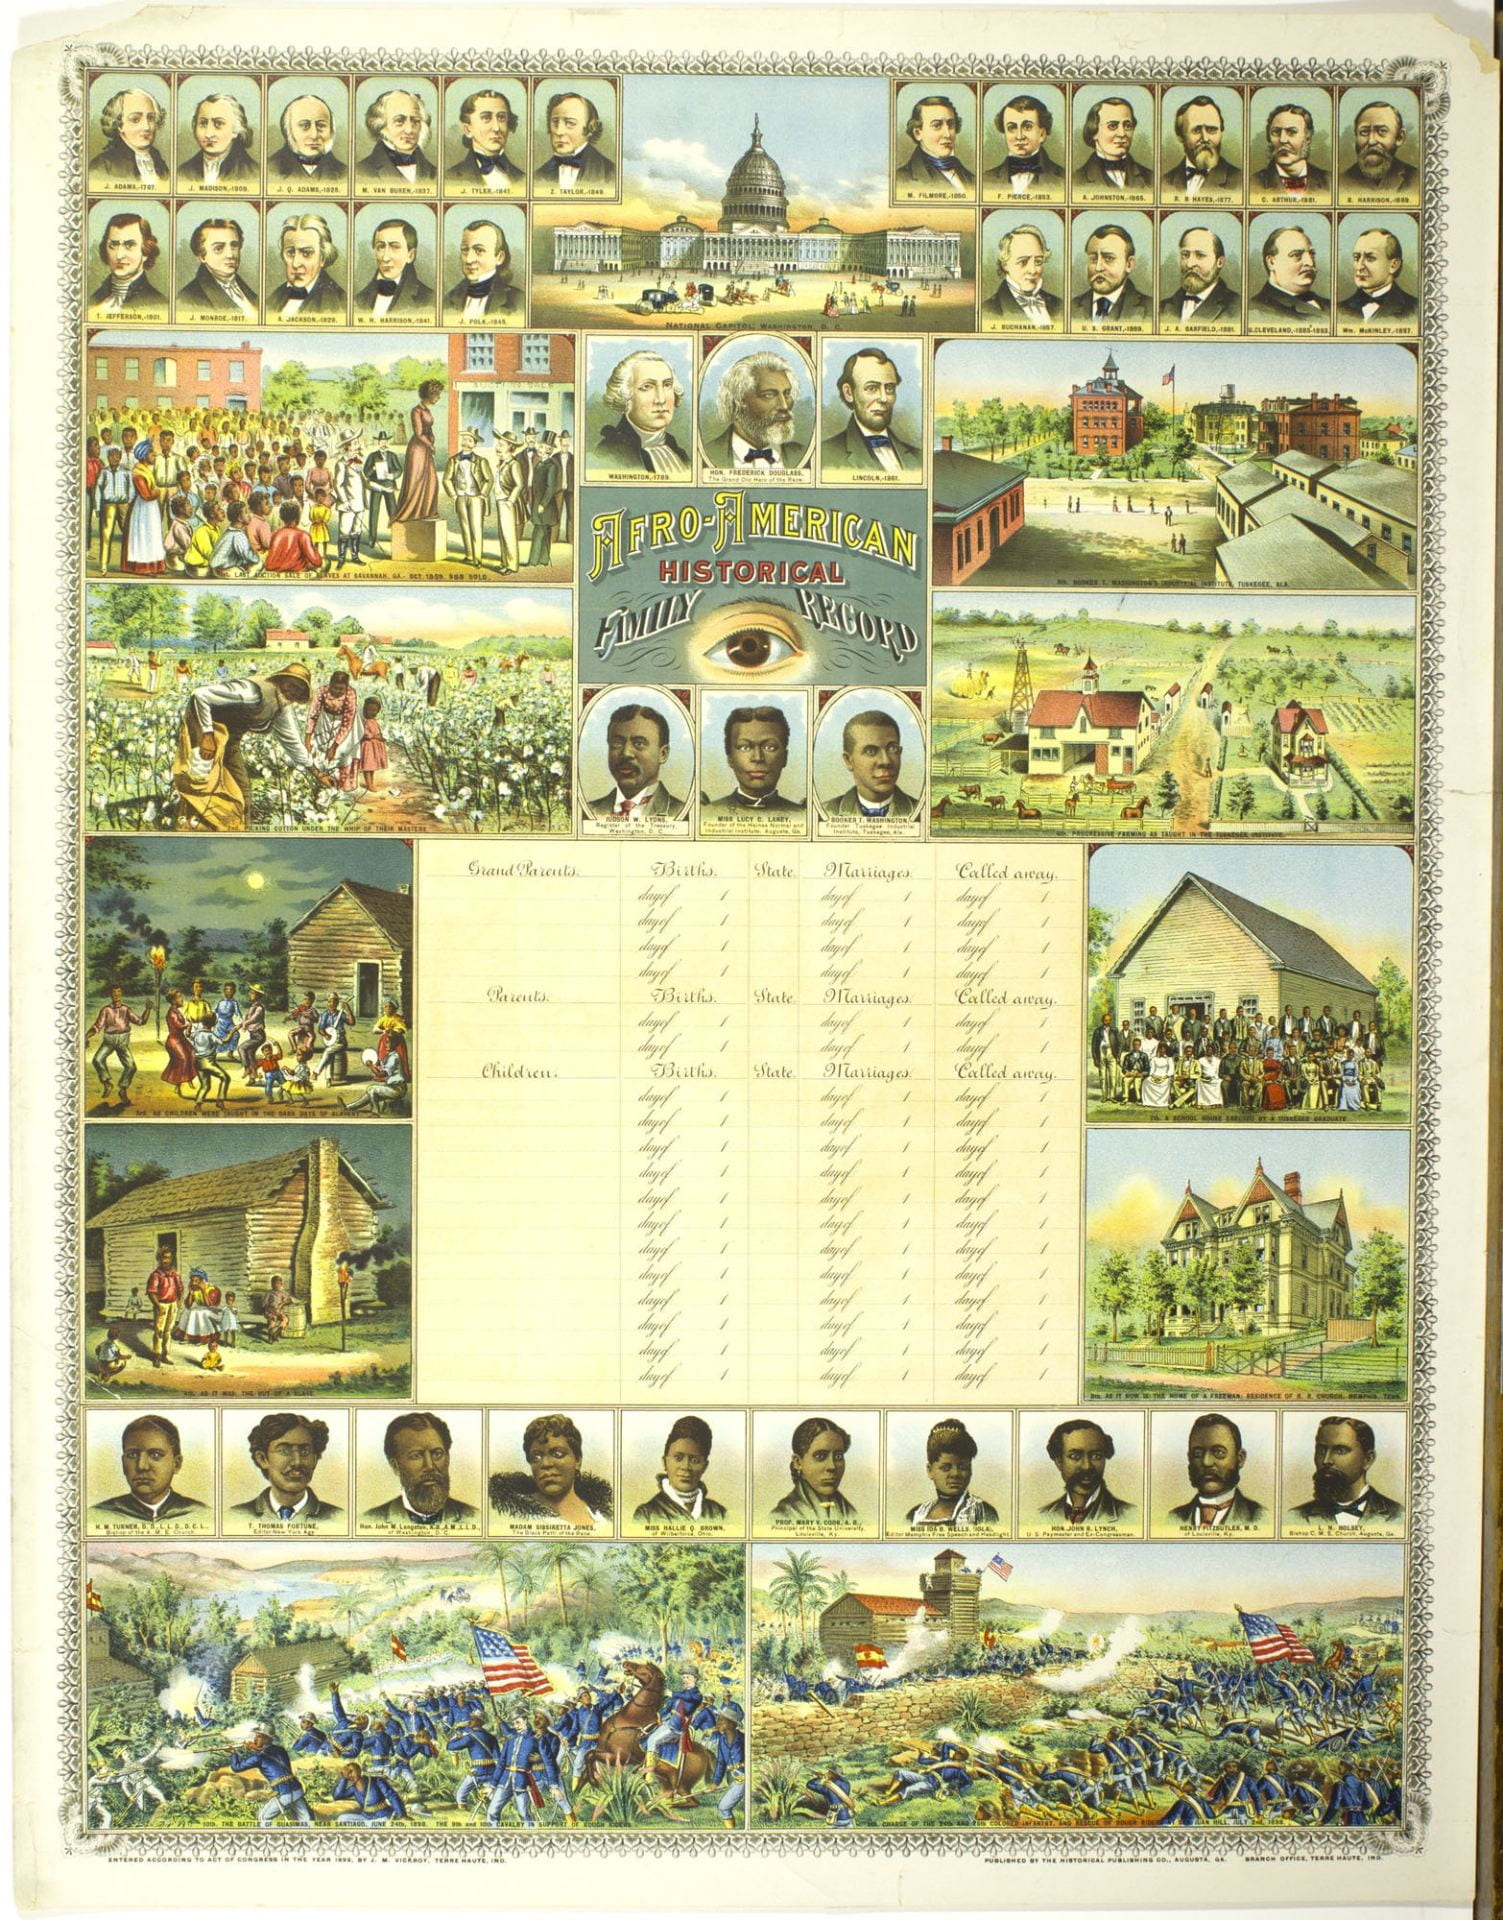 Family record showing historical scenes, a text block, and figure portraits.